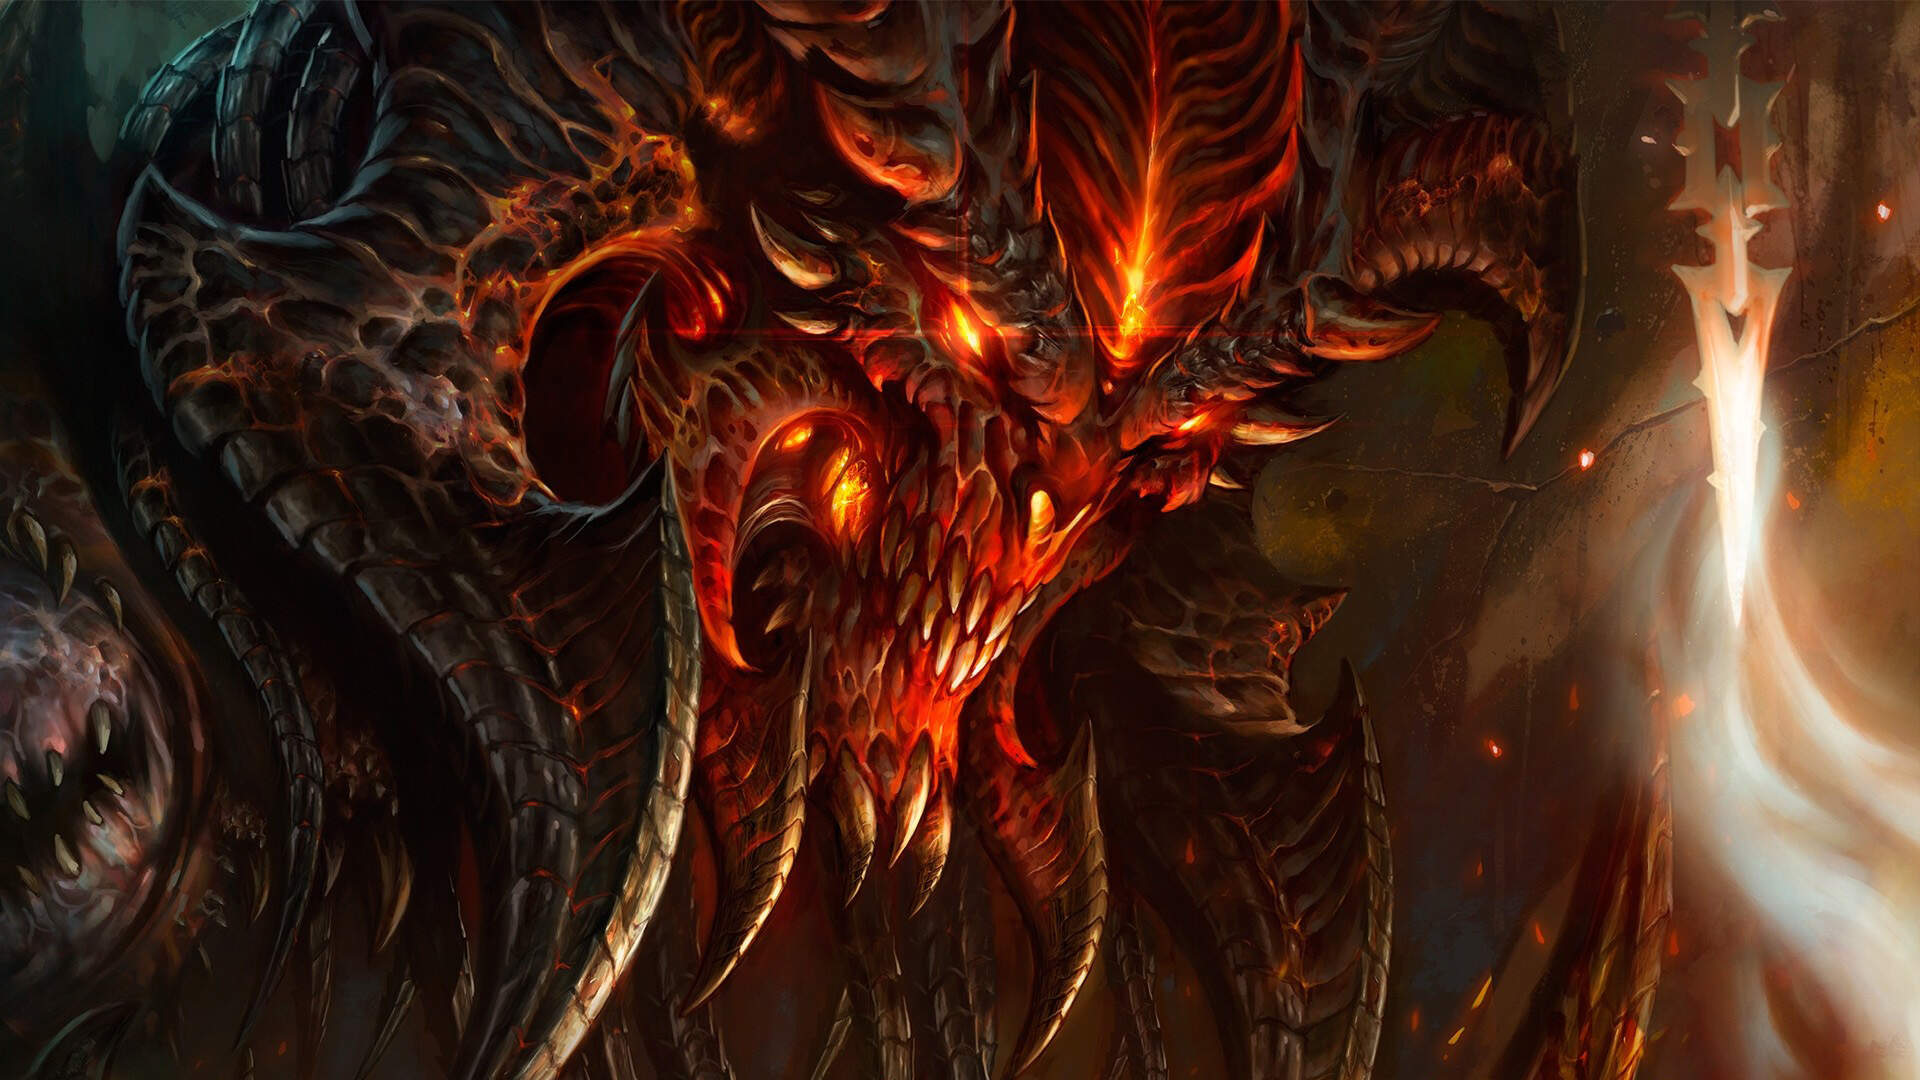 BlizzCon 2018 Schedule Could Be Teasing Some Diablo News